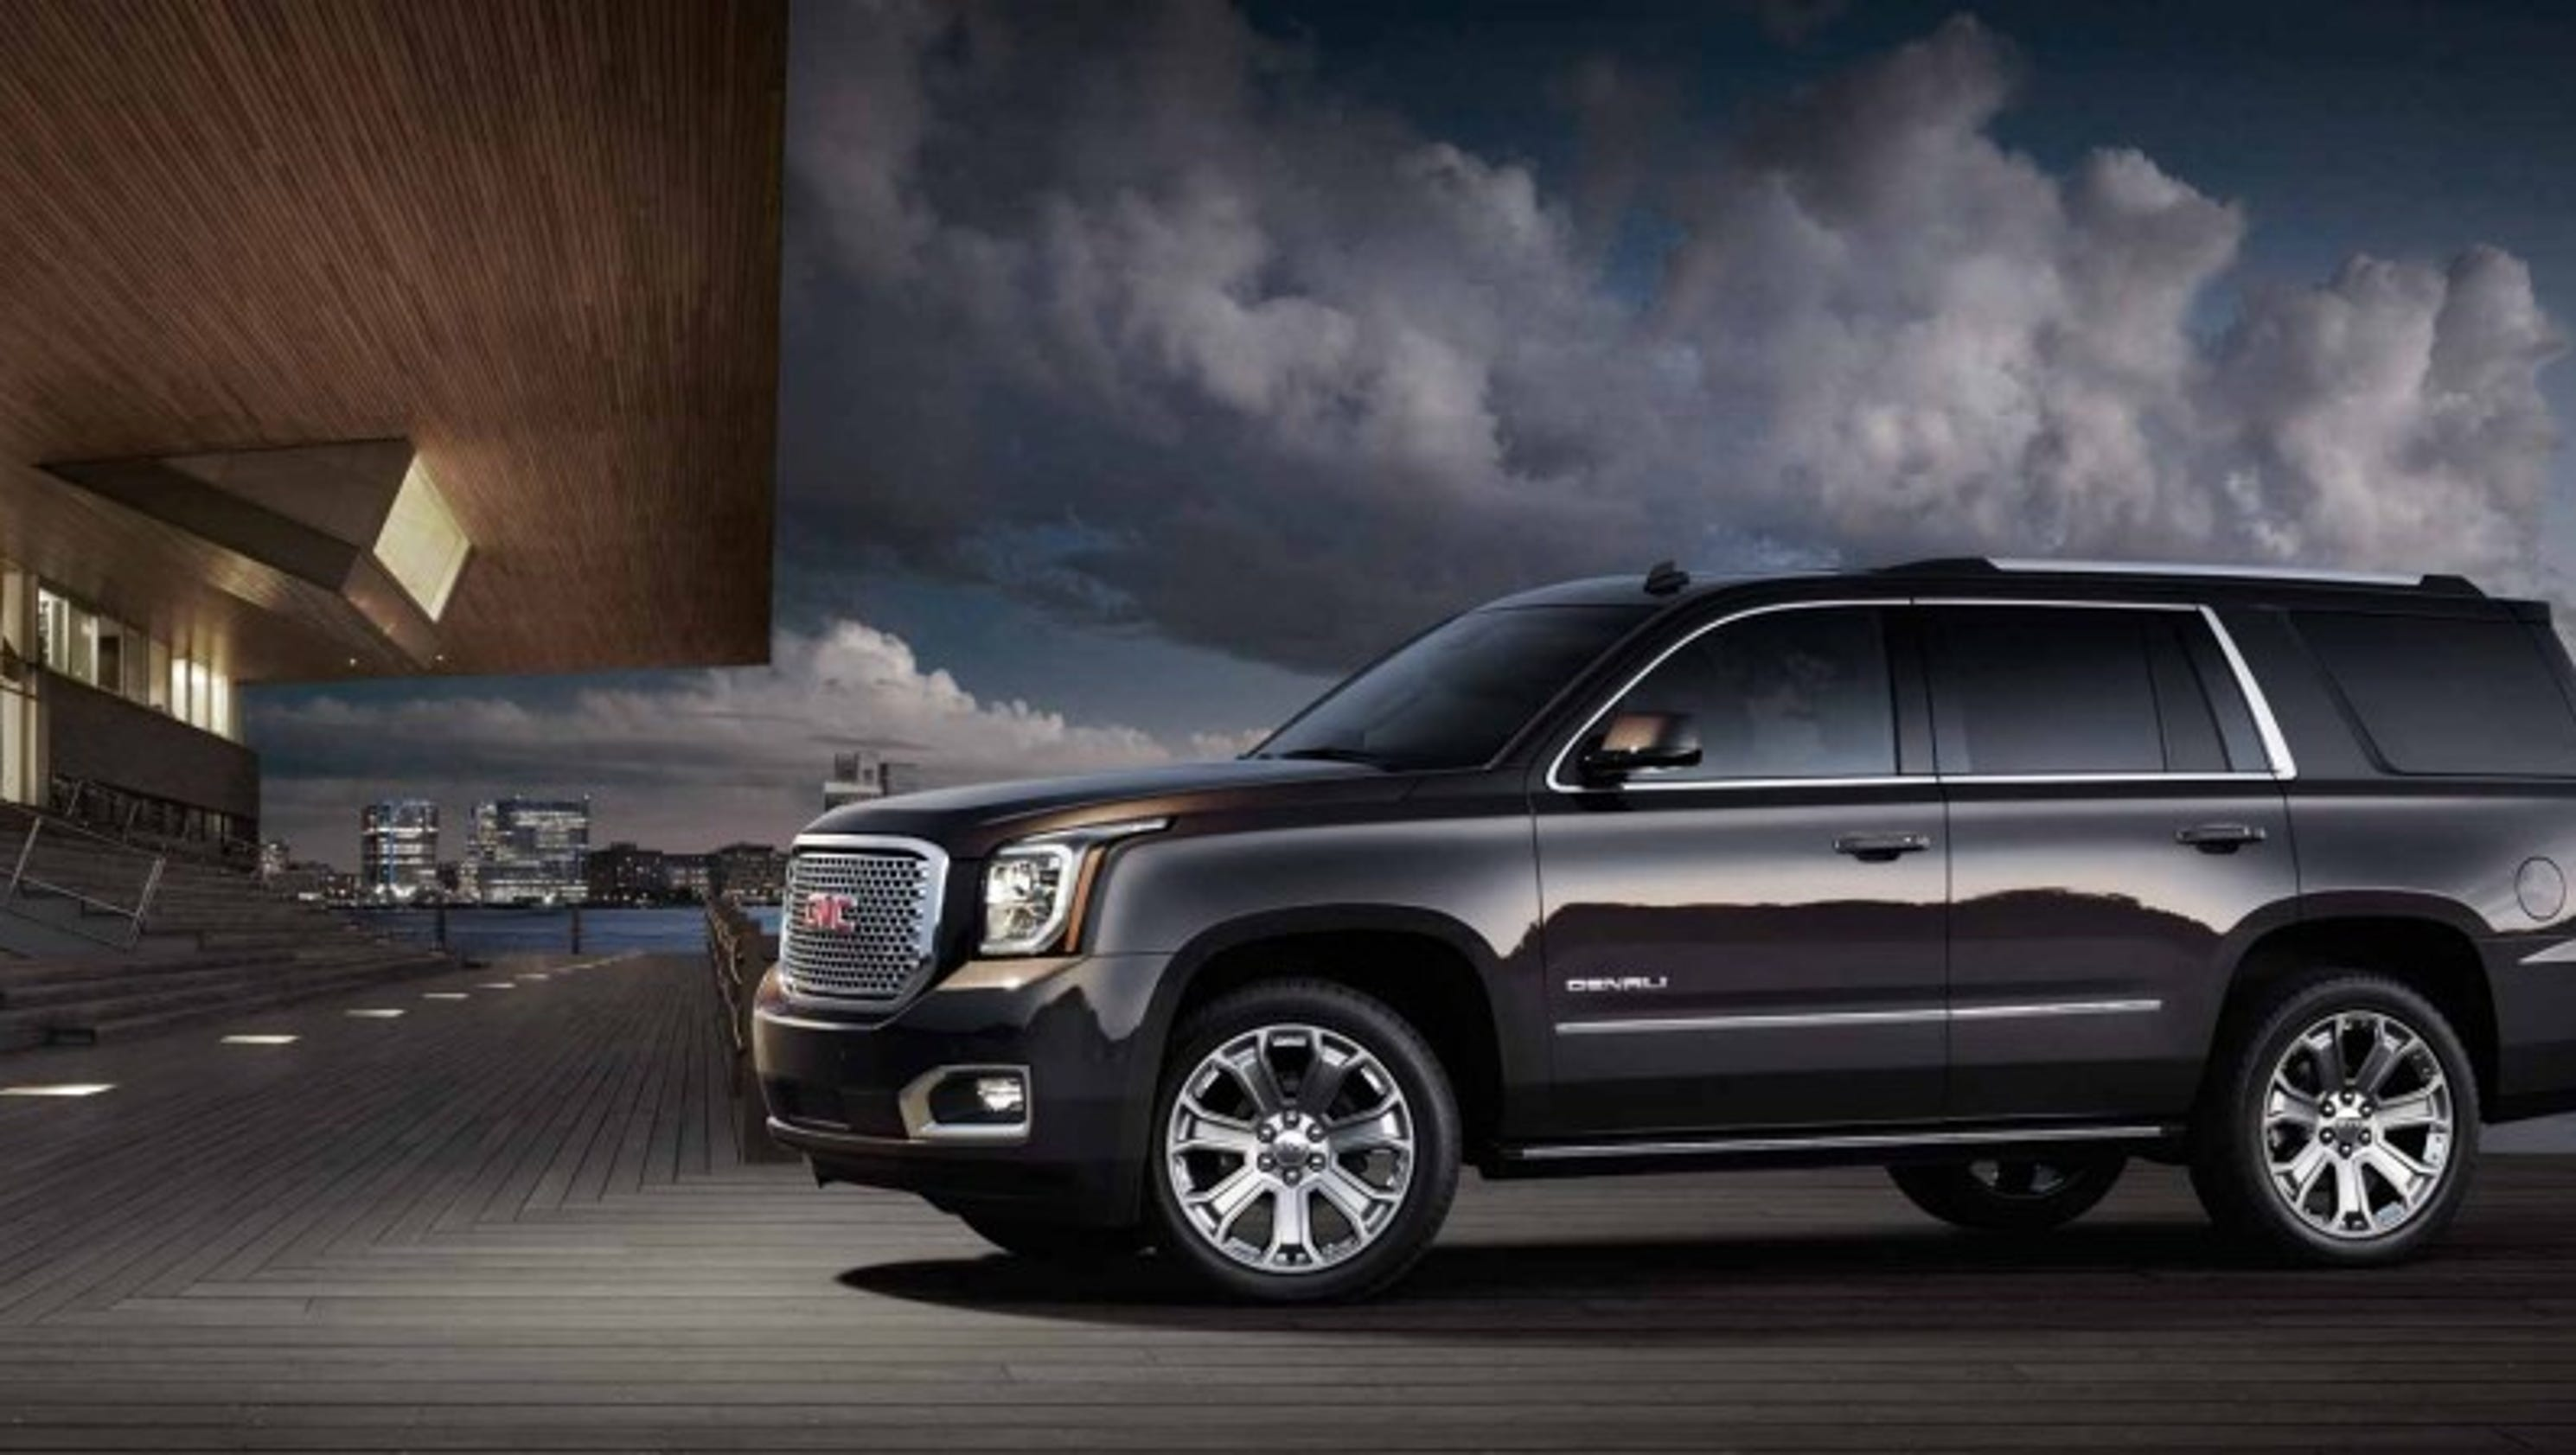 local yukon gmc will they fantastic test today hopefully drive xl one gm denalixl these stop by making autonation really your photos never review to check denali dealership autonatio are drop out as